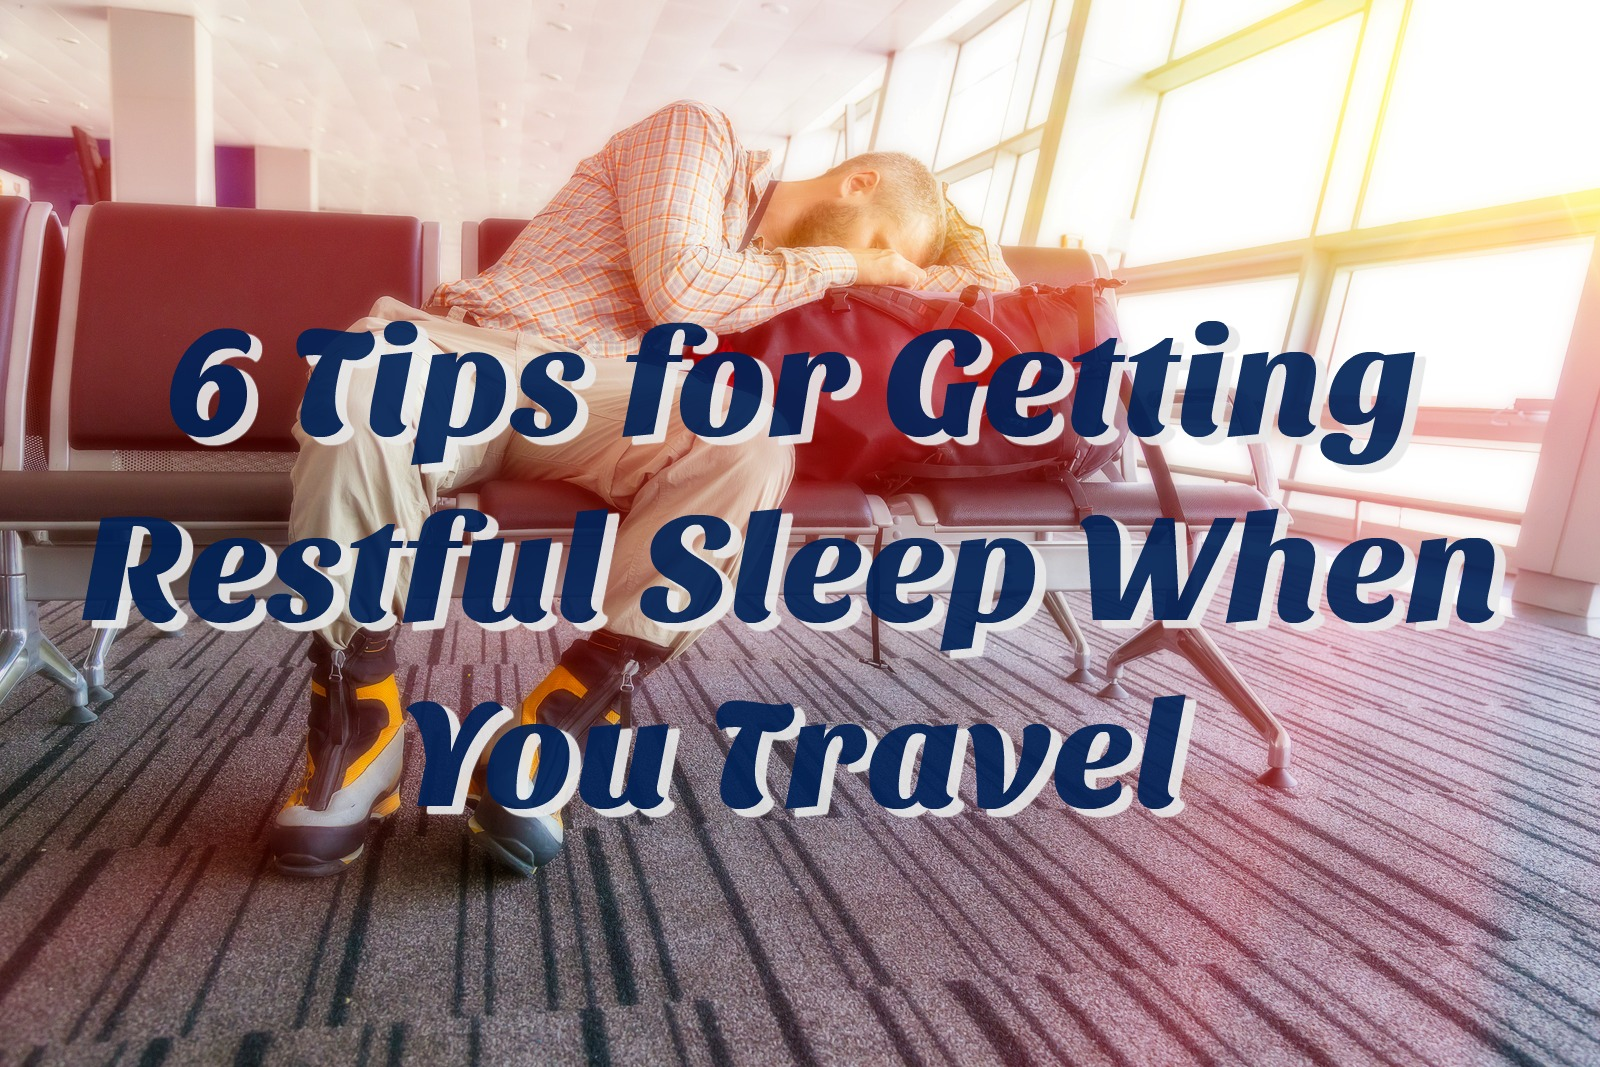 6 Tips for Getting Restful Sleep When You Travel